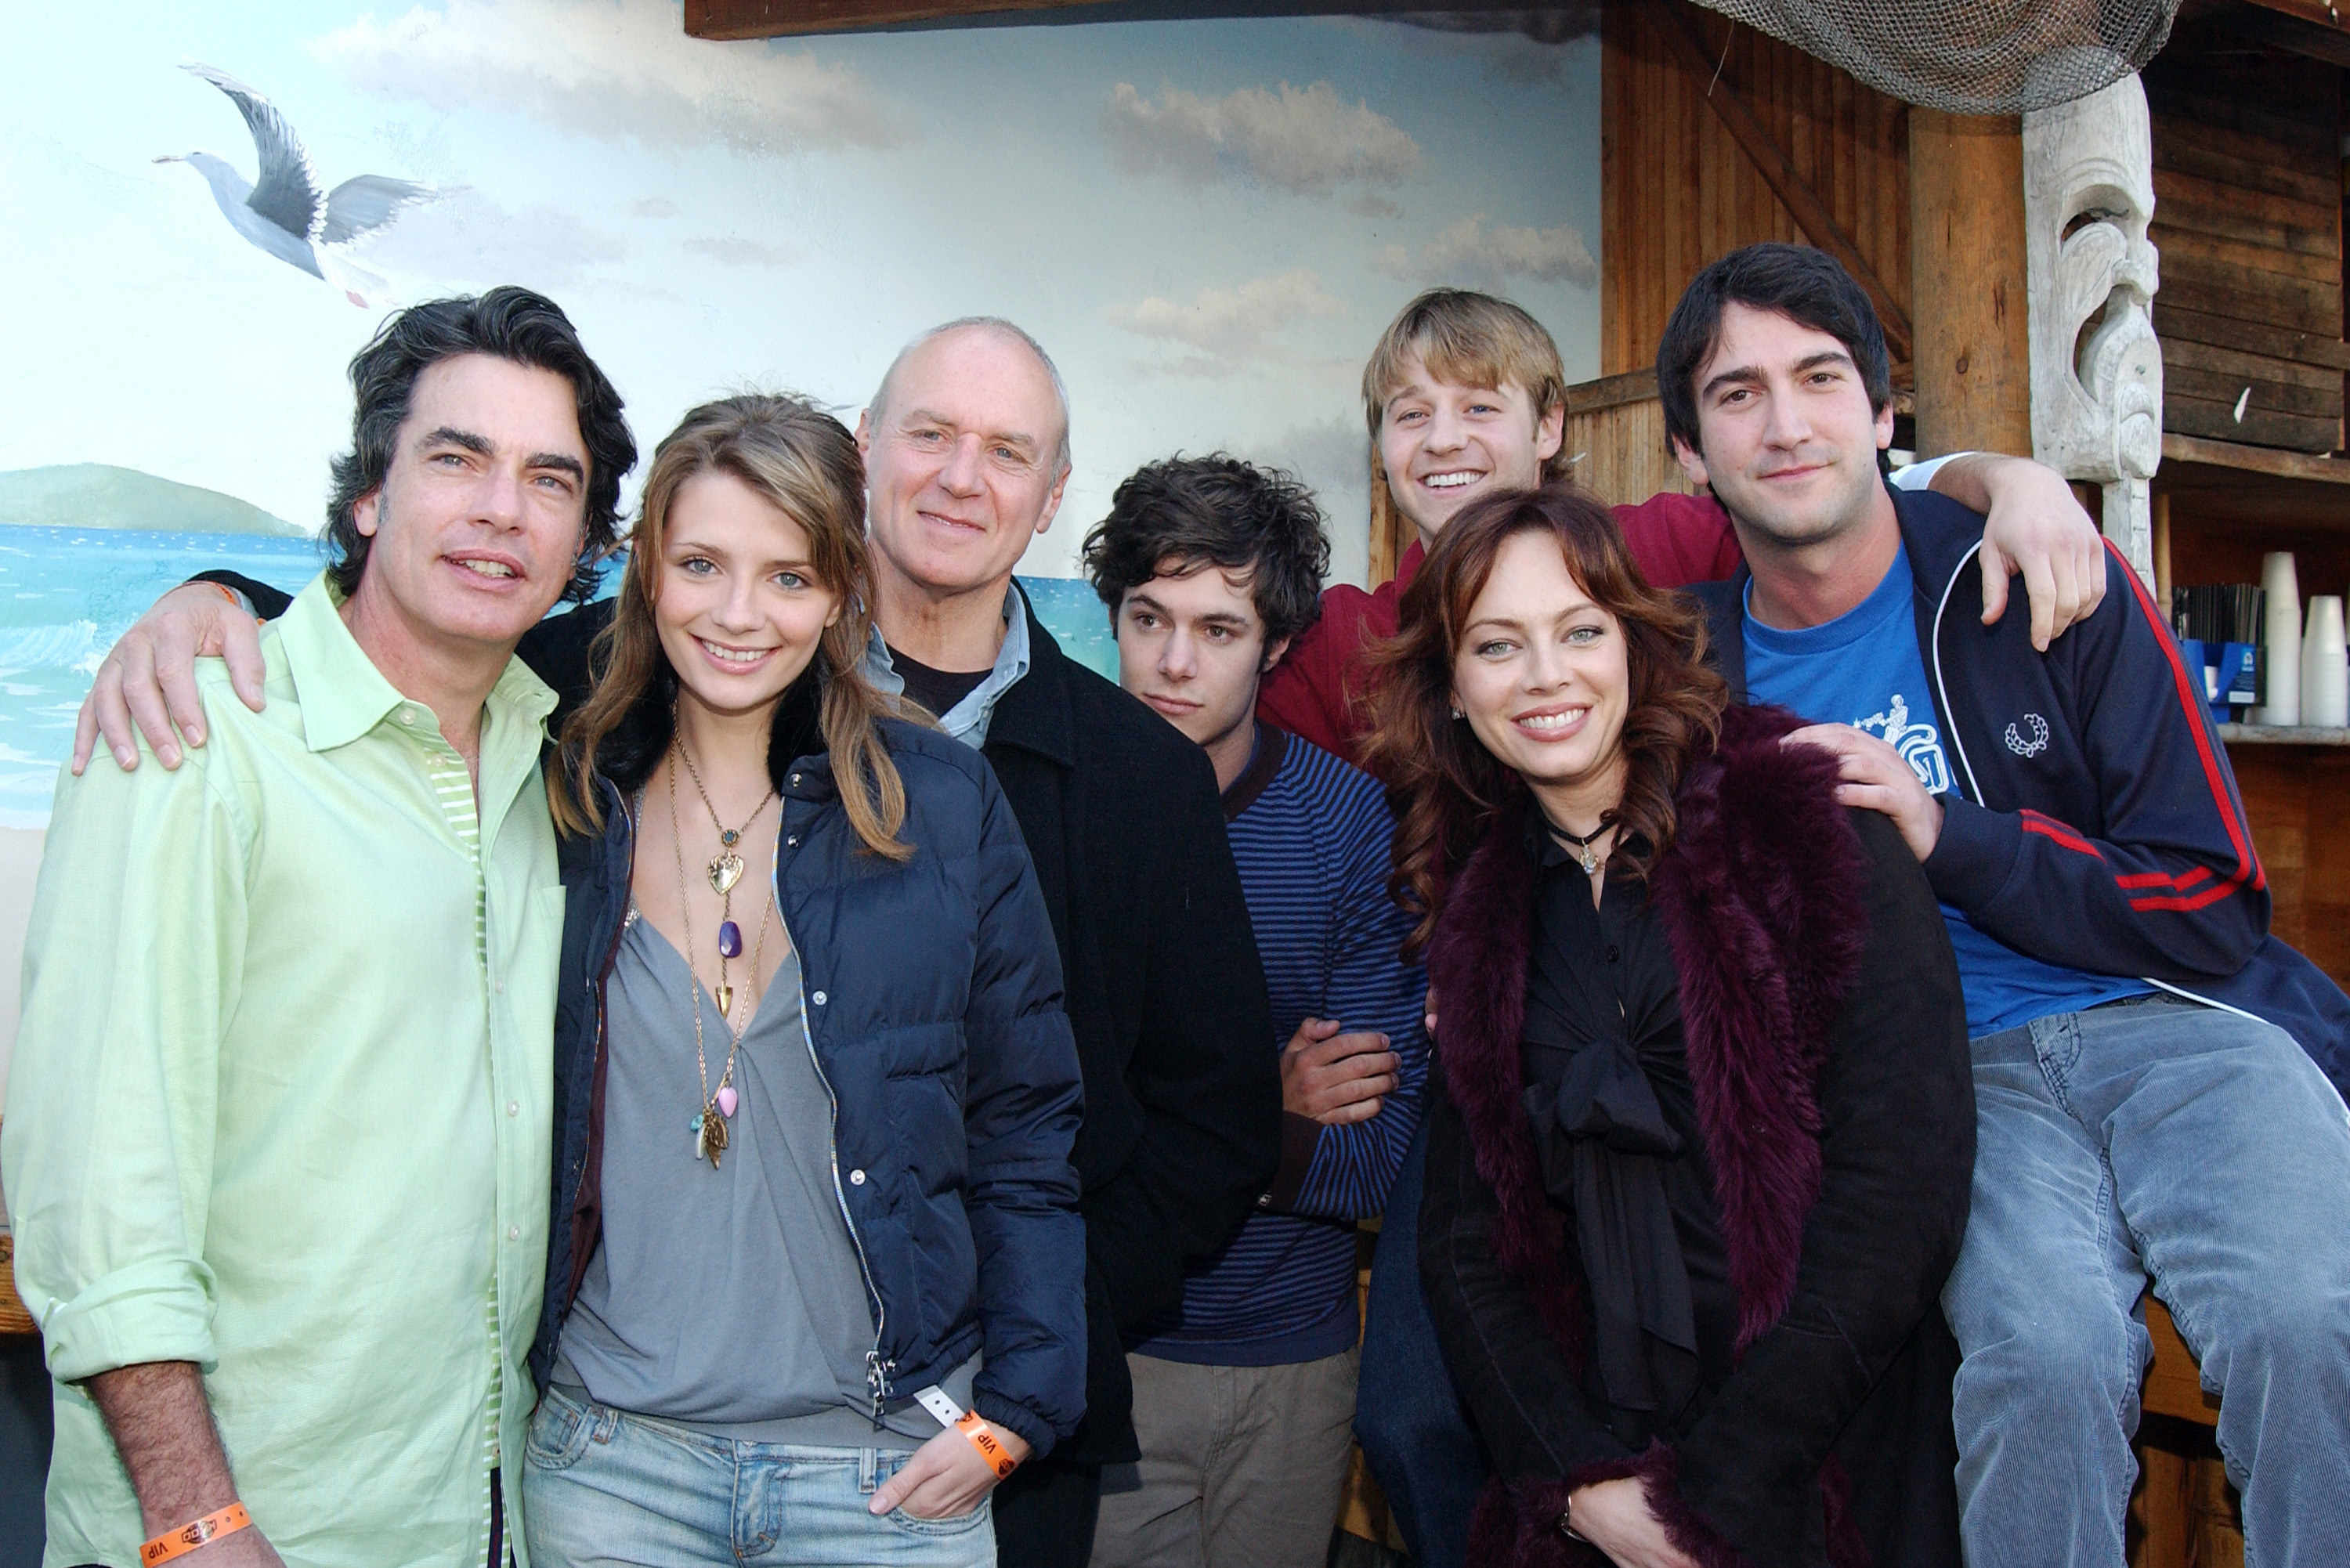 Some of the O.C. cast poses for a group photo